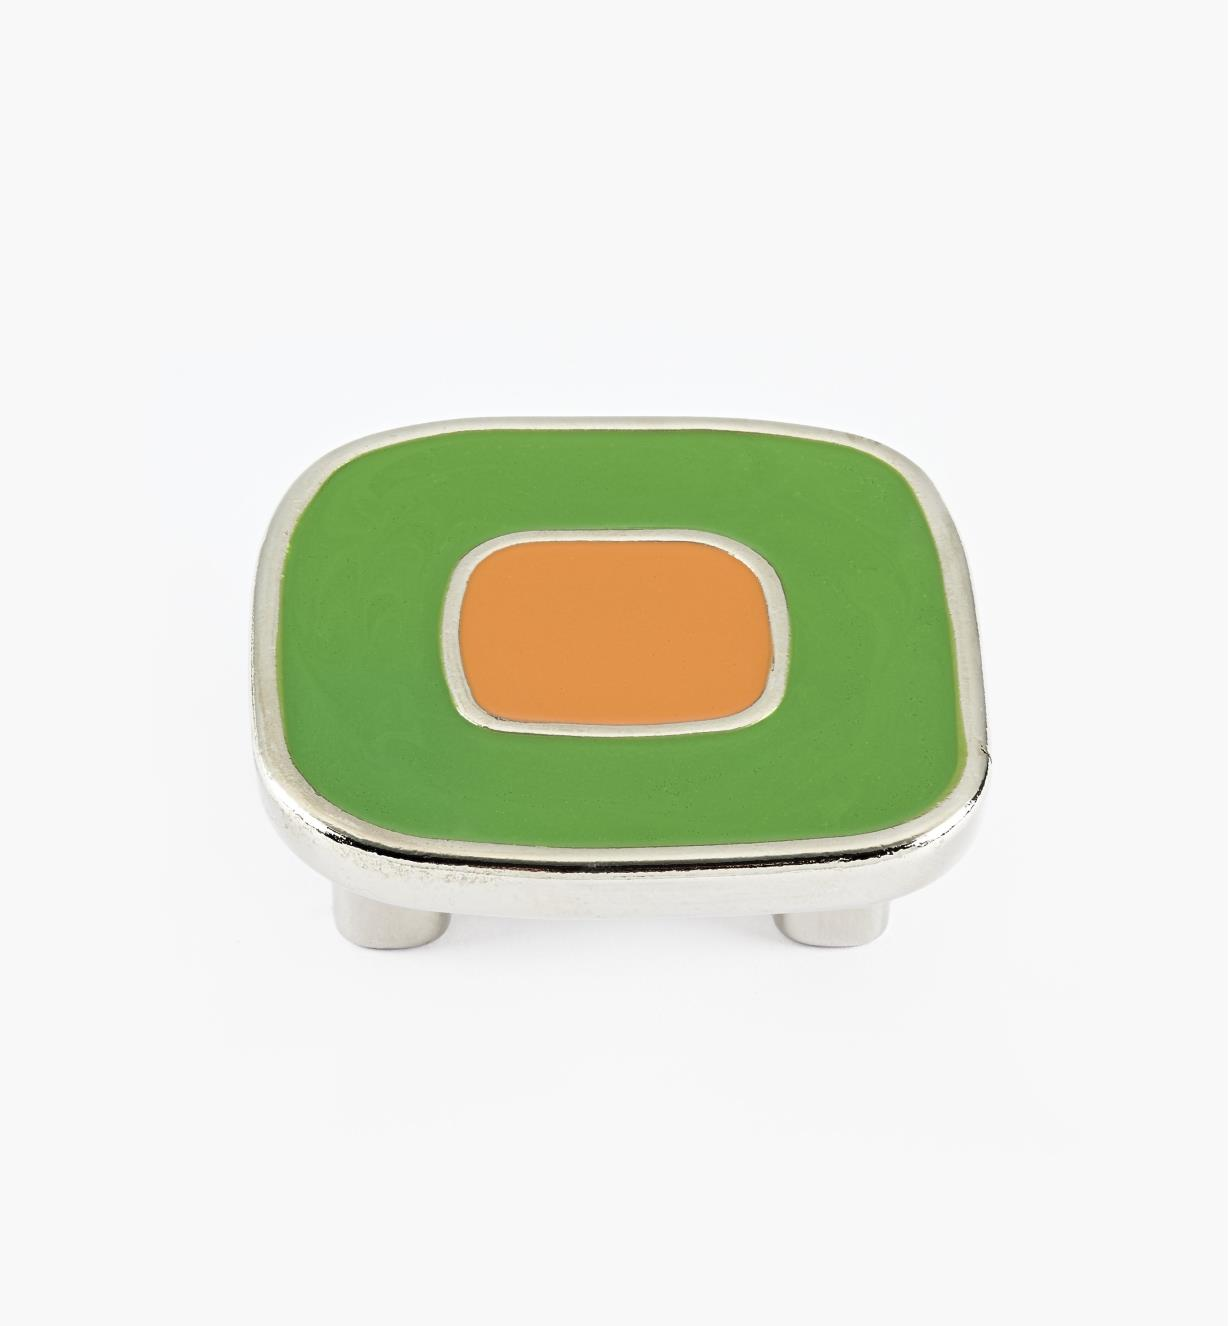 01X4341 - Enamel Infill 32mm x 52mm Large Green/Orange Knob